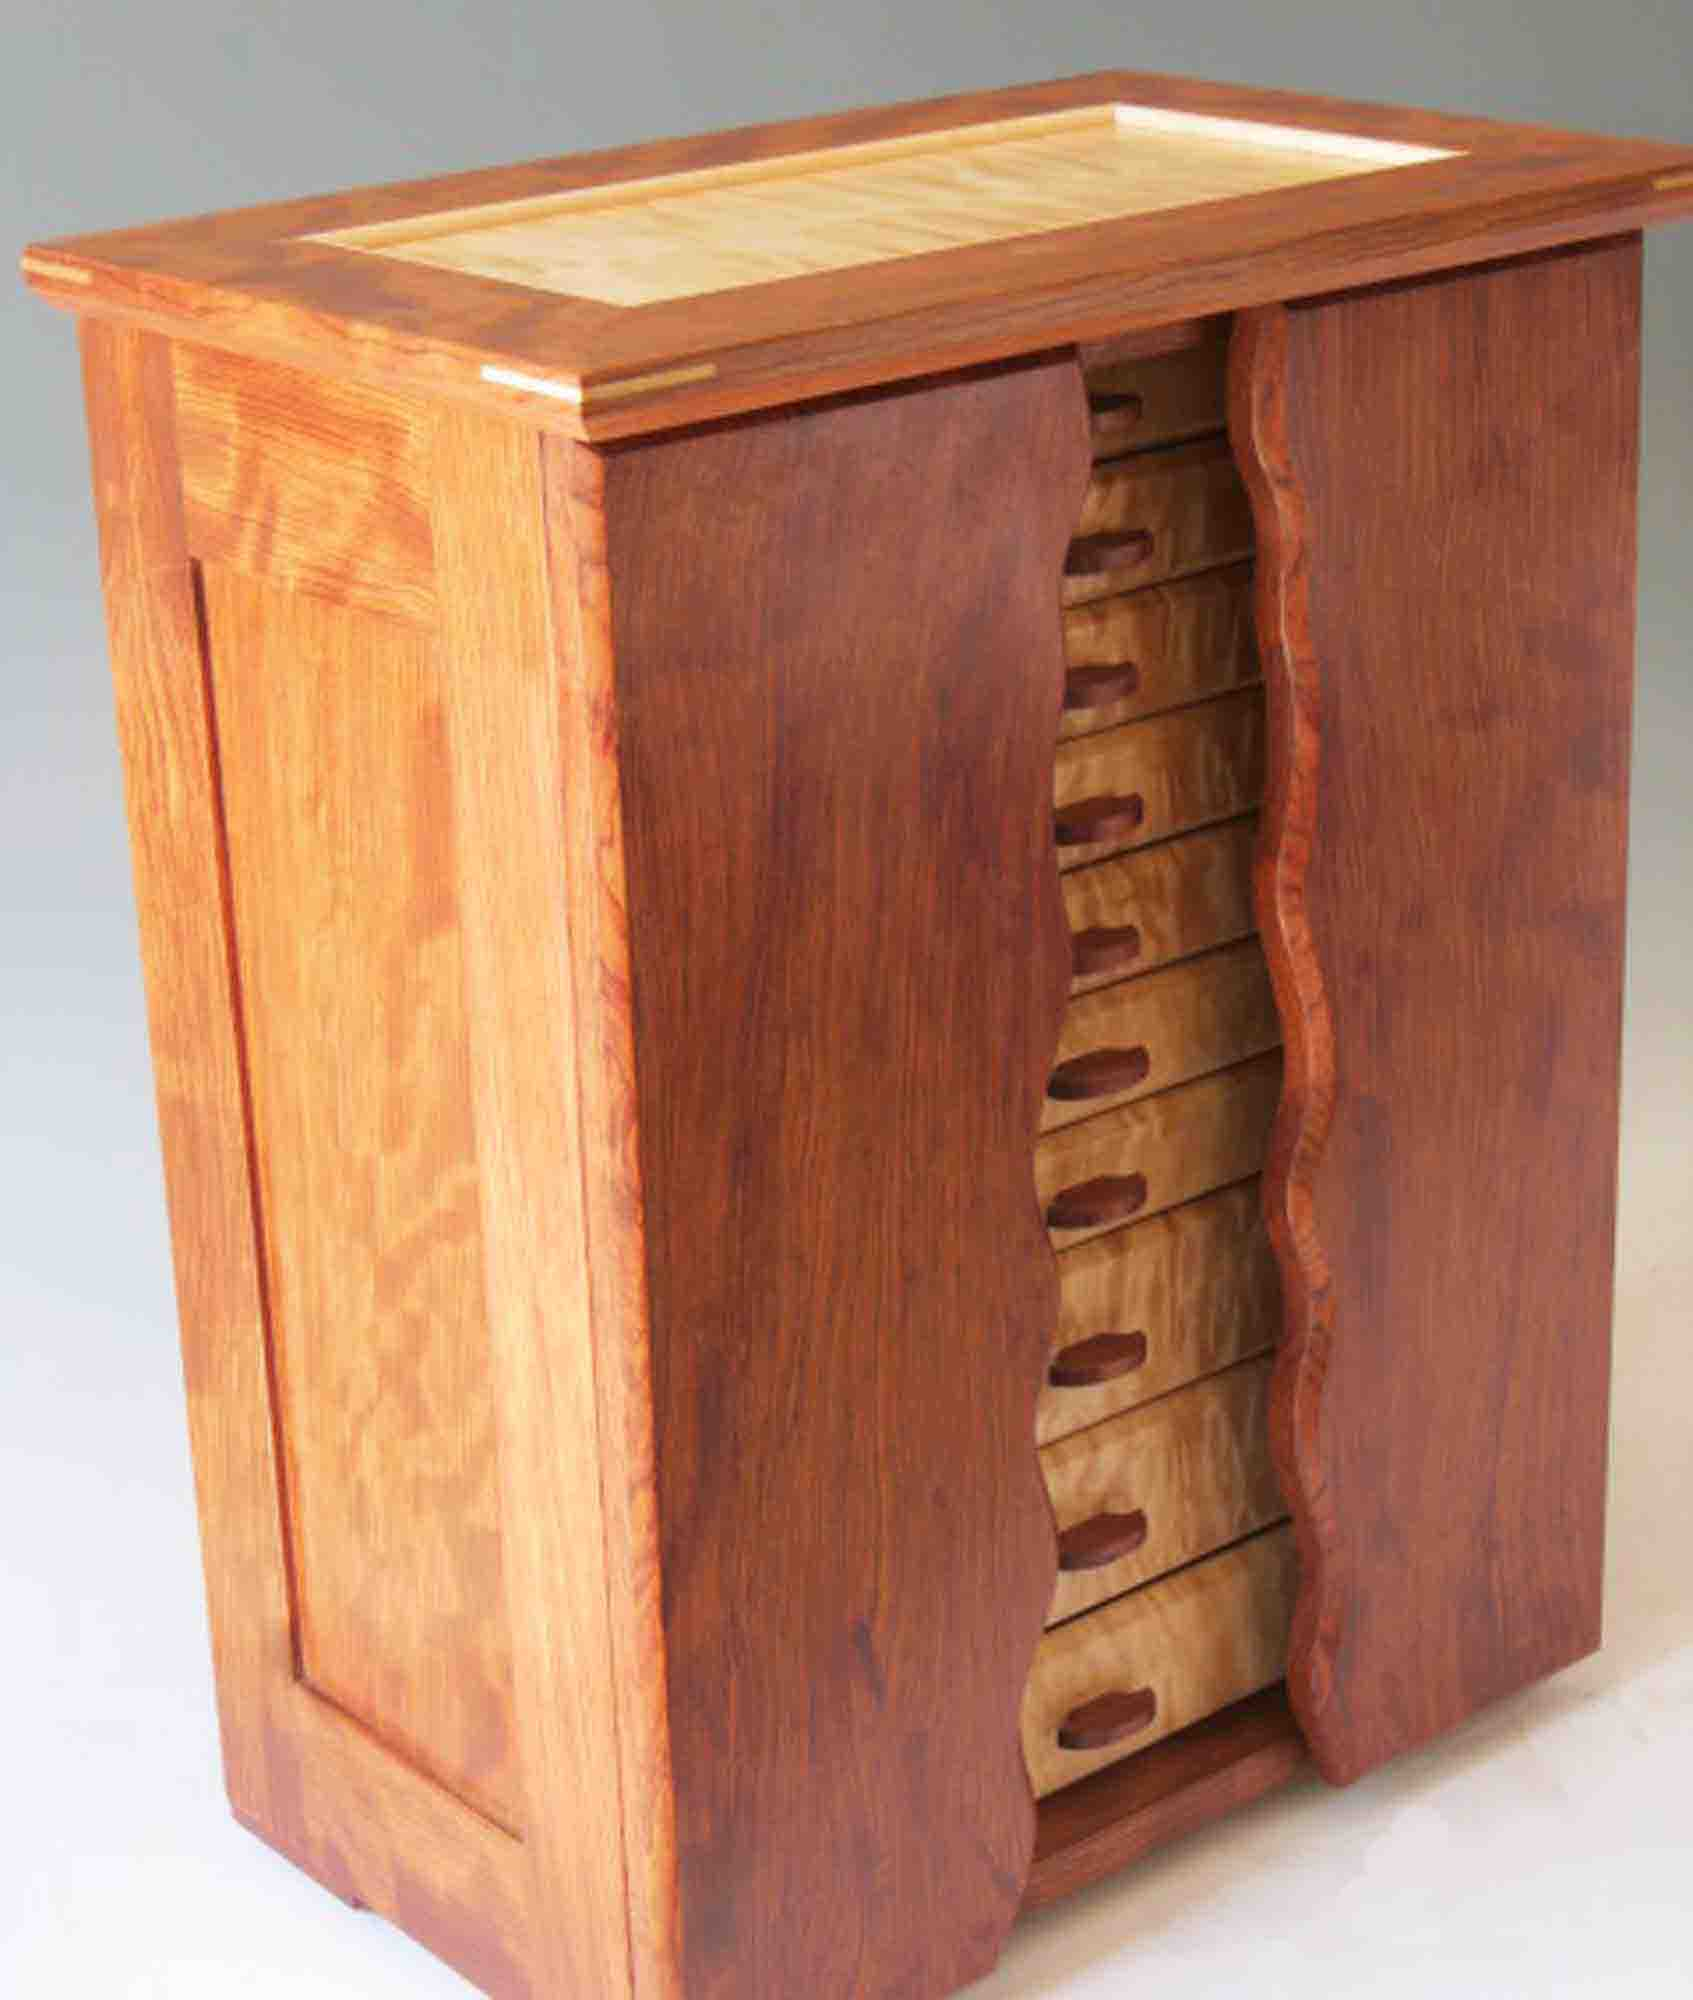 Handcrafted wood jewelry boxes - Steve Smith Boxes